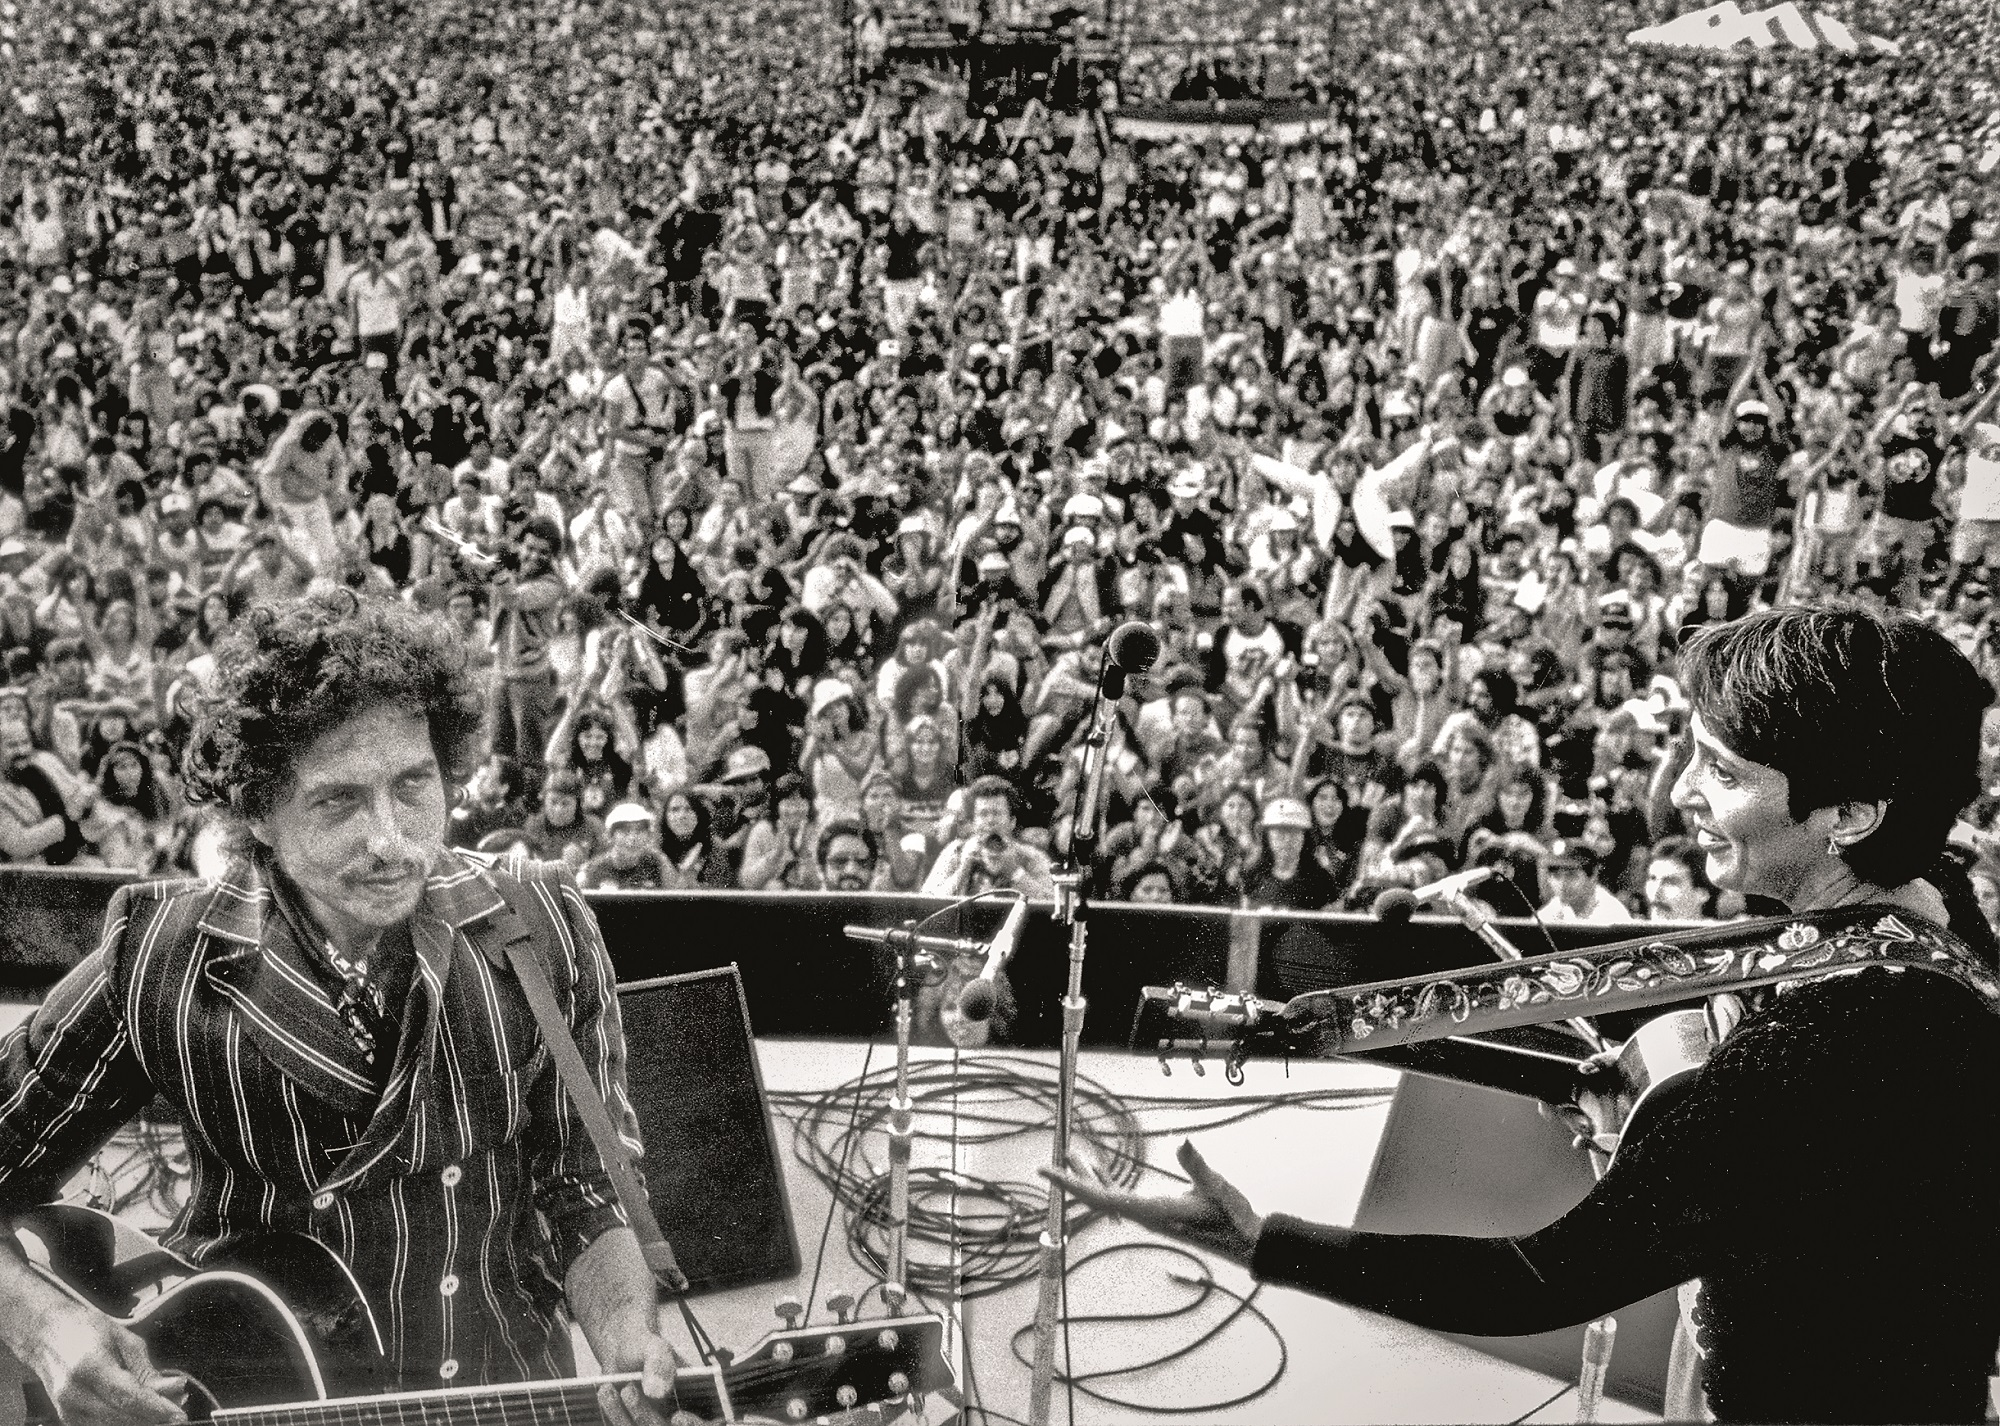 June 6, 1982 - Los Angeles, California, United States: Surprise guests Bob Dylan and Joan Baez tune up before singing Blowing In The Wind during a segment at the Peace Sunday benefit concert at the Rose Bowl., Image: 302761772, License: Rights-managed, Restrictions: No publication in Los Angeles Daily News, Orange County Register, LA Opinion, Model Release: no, Credit line: Gary Friedman / Polaris / Profimedia